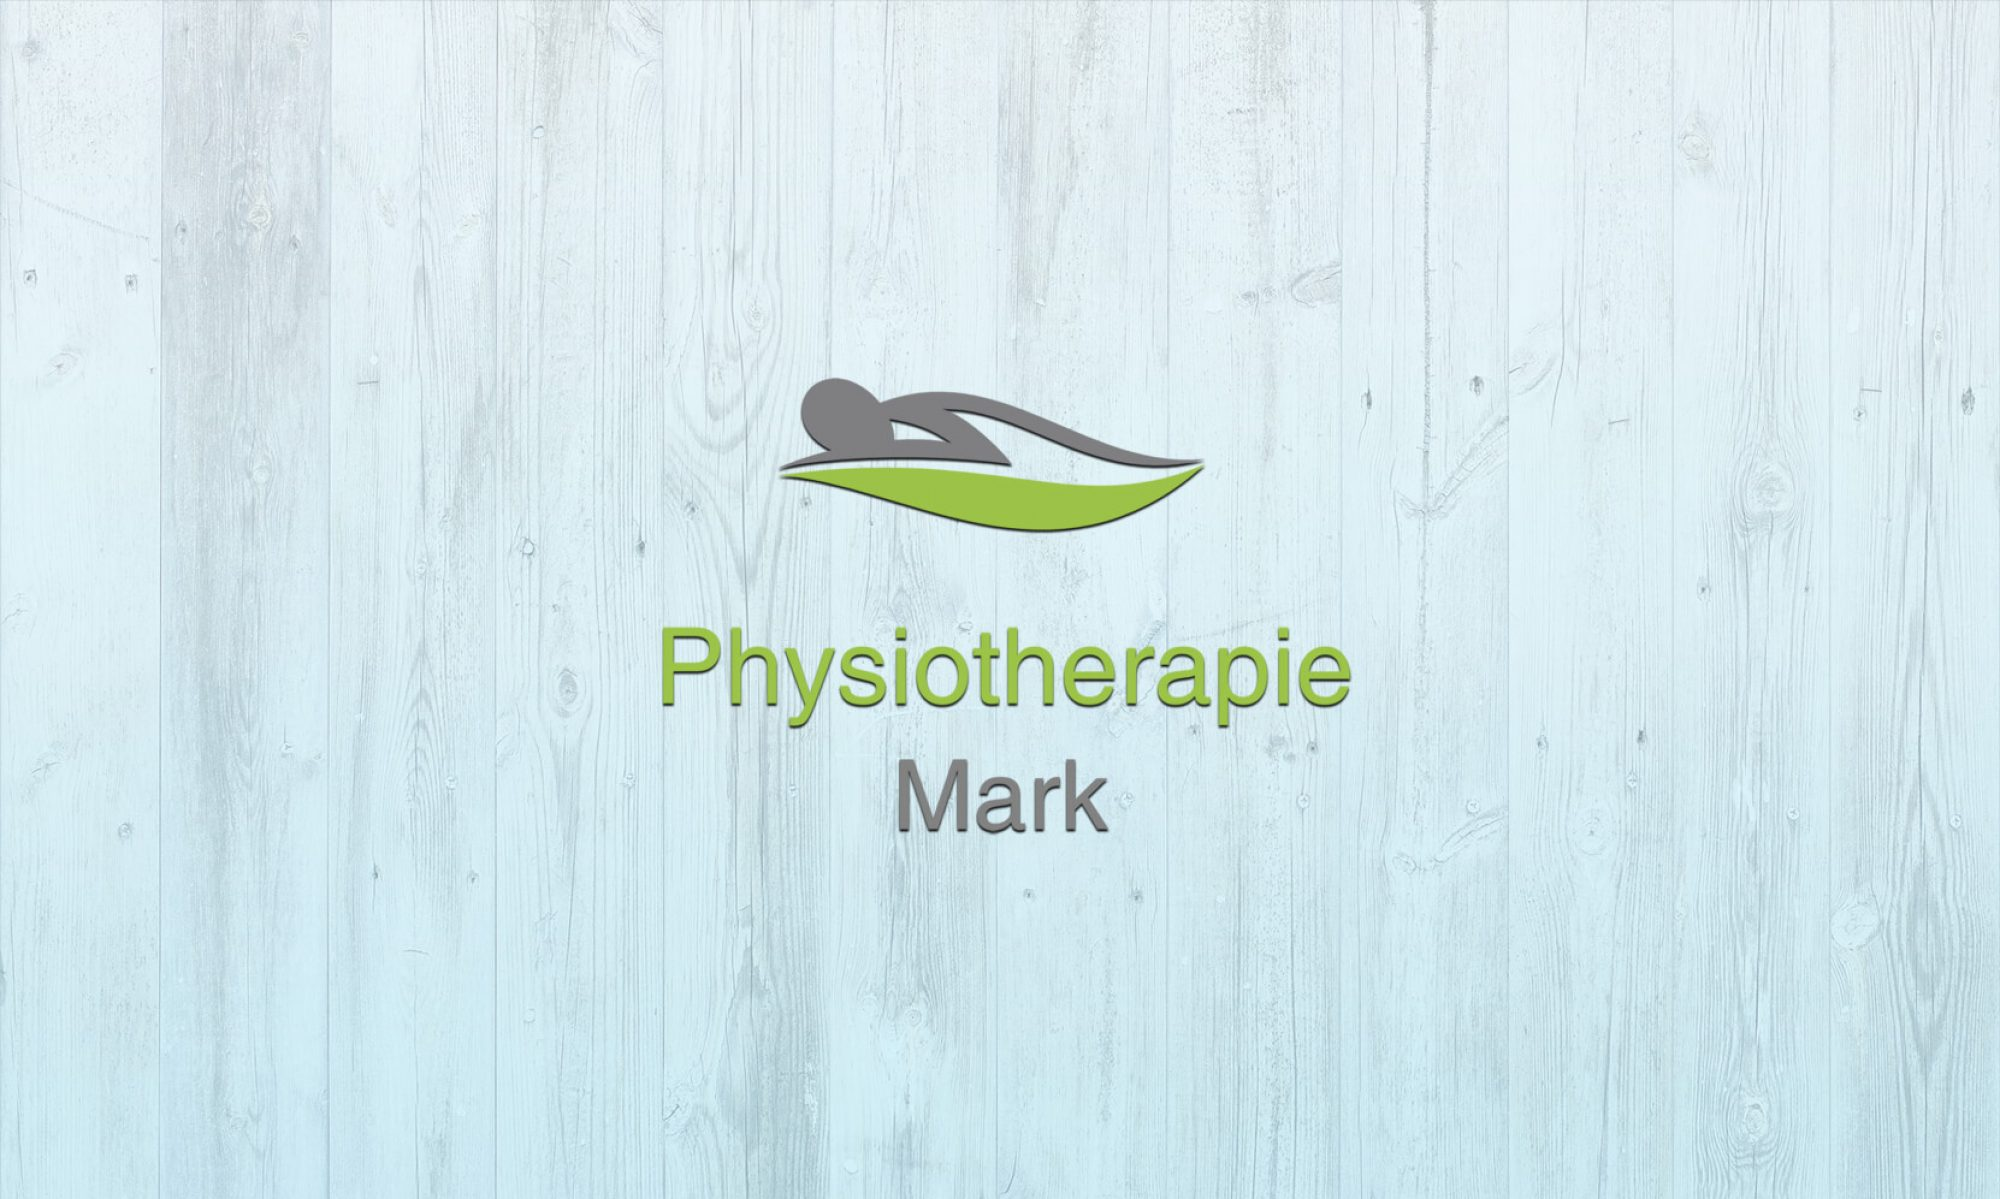 Physiotherapie Mark